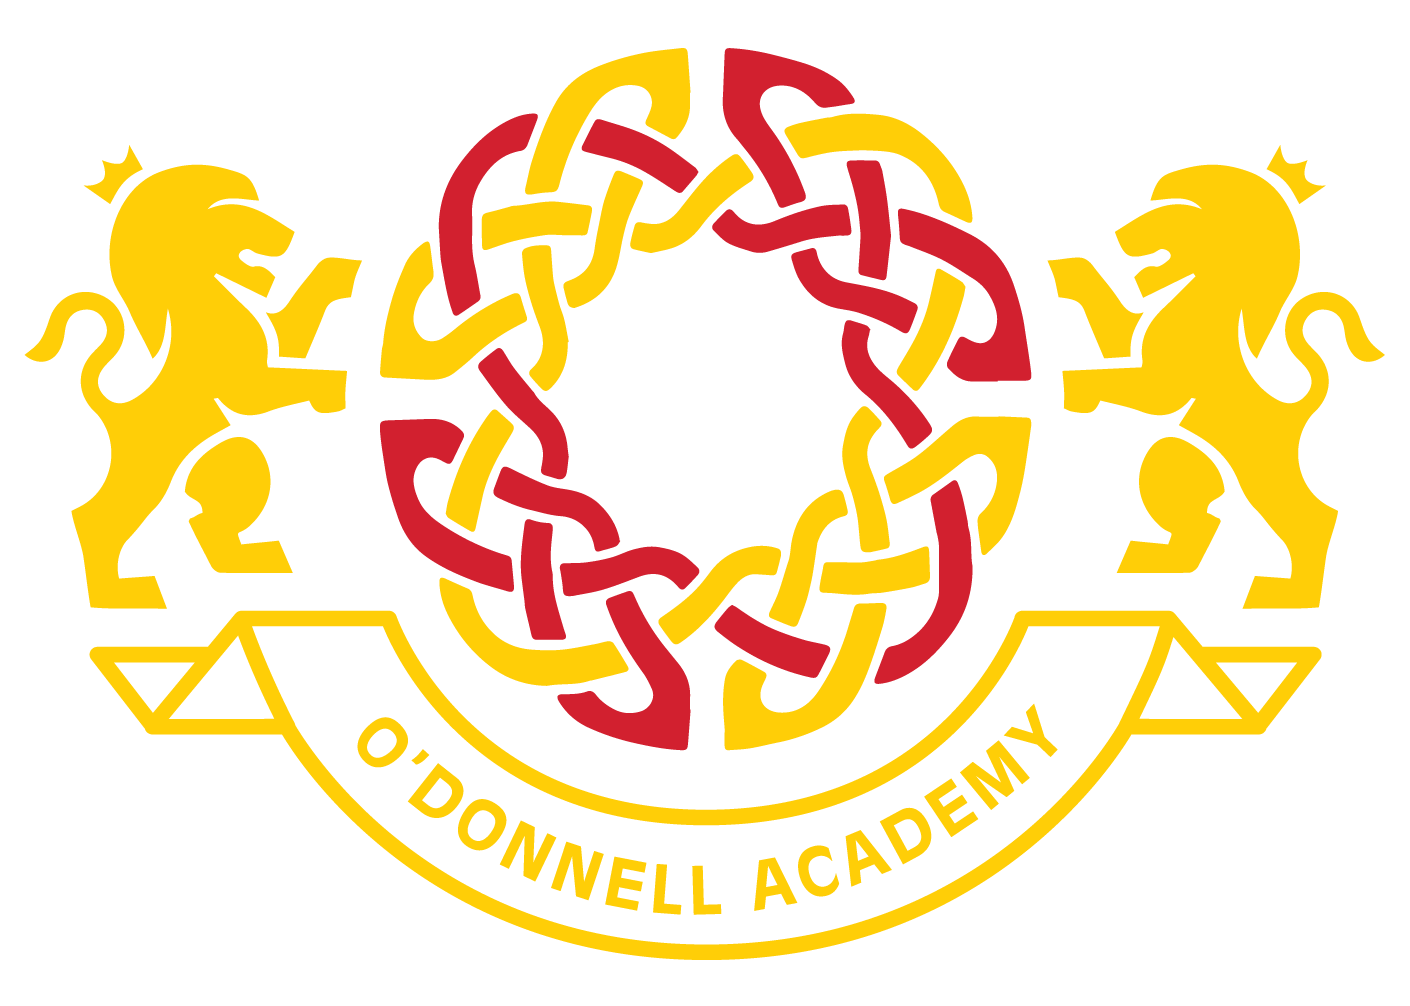 O'Donnell Academy of Irish Dance